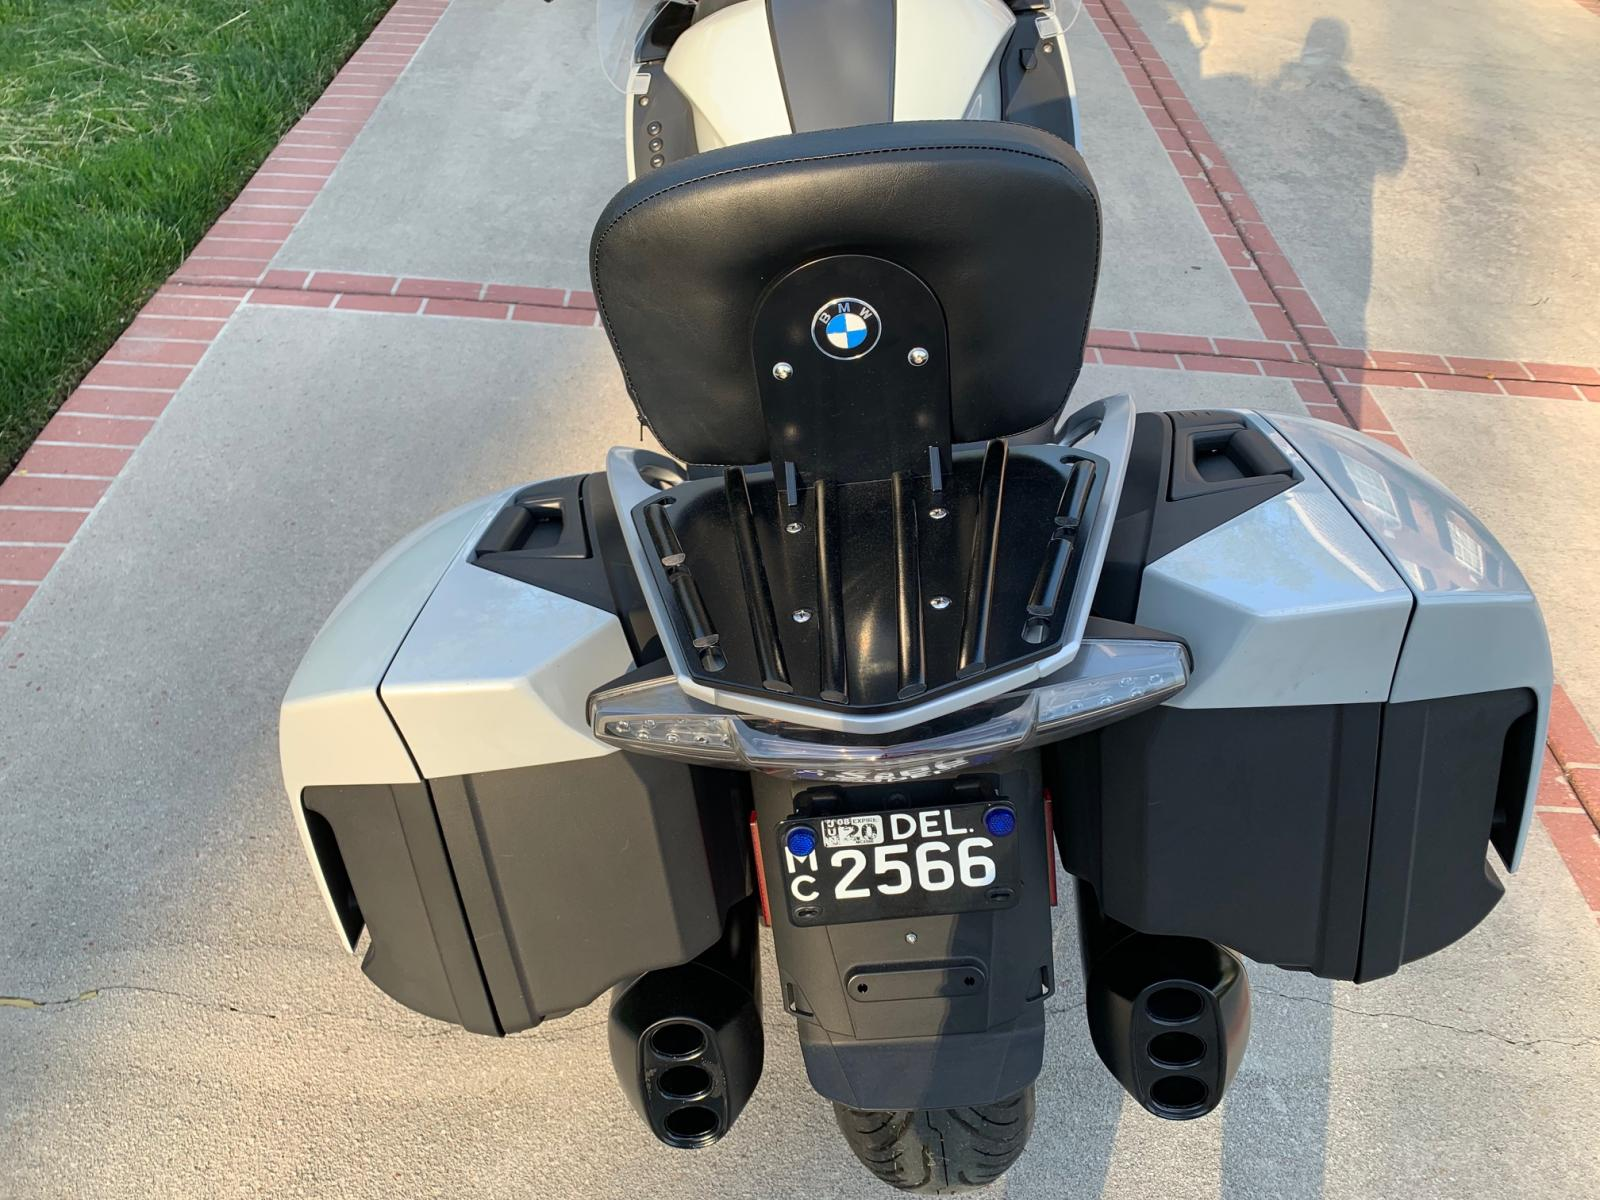 BMW Of Wilmington >> 2013 BMW K1600GT with Painted accessories - BMW K1600 ...